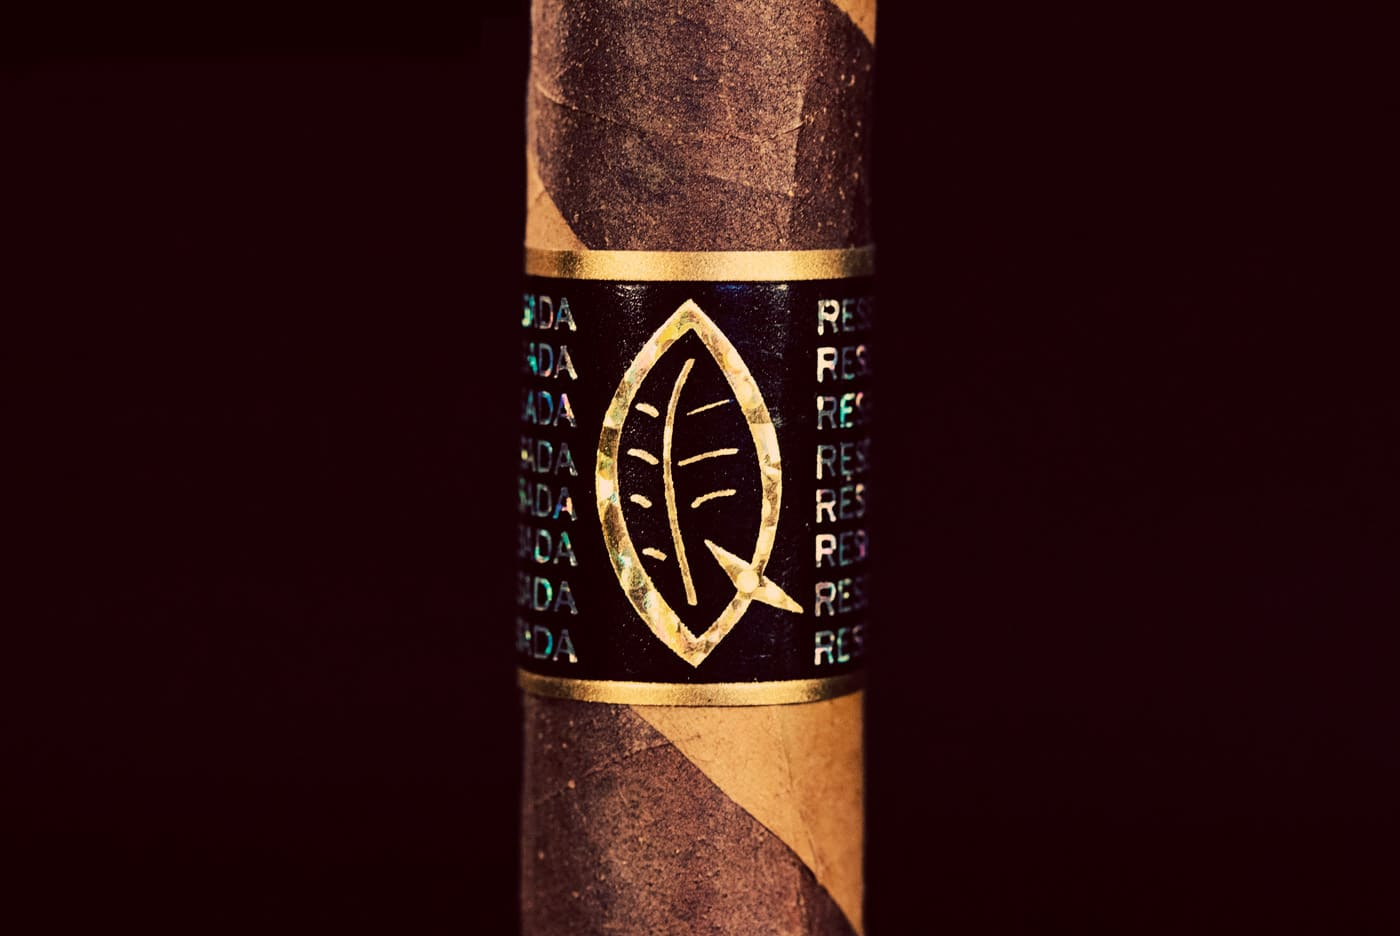 Quesada Reserva Privada Barber Pole Robusto cigar review